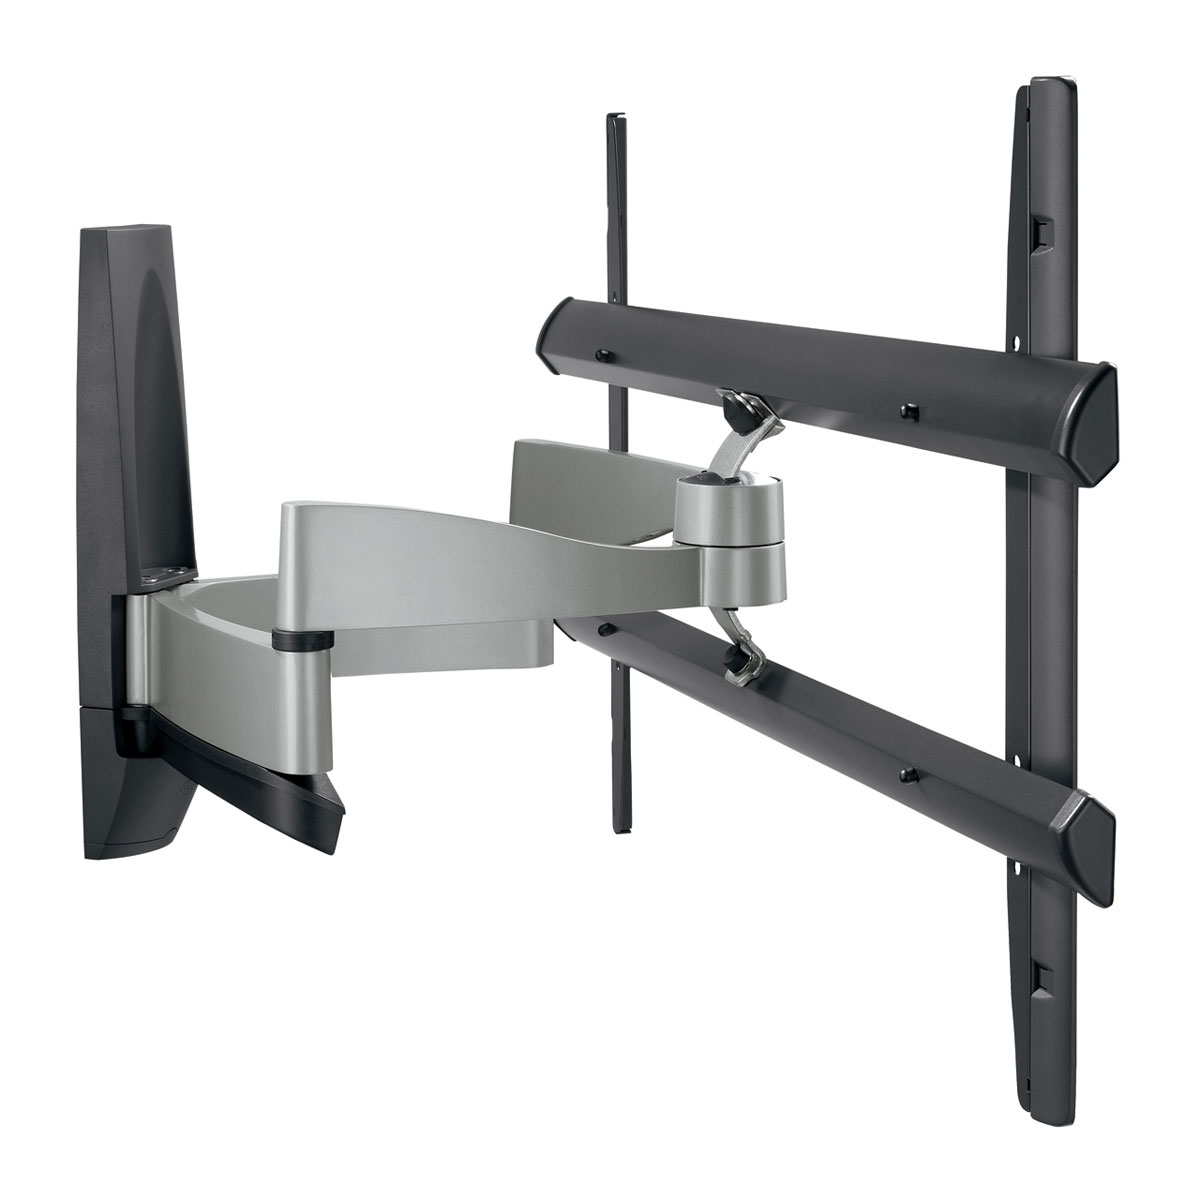 Vogel 39 s efw 6445 plus efw 6445 plus achat vente - Support tv mural orientable ...